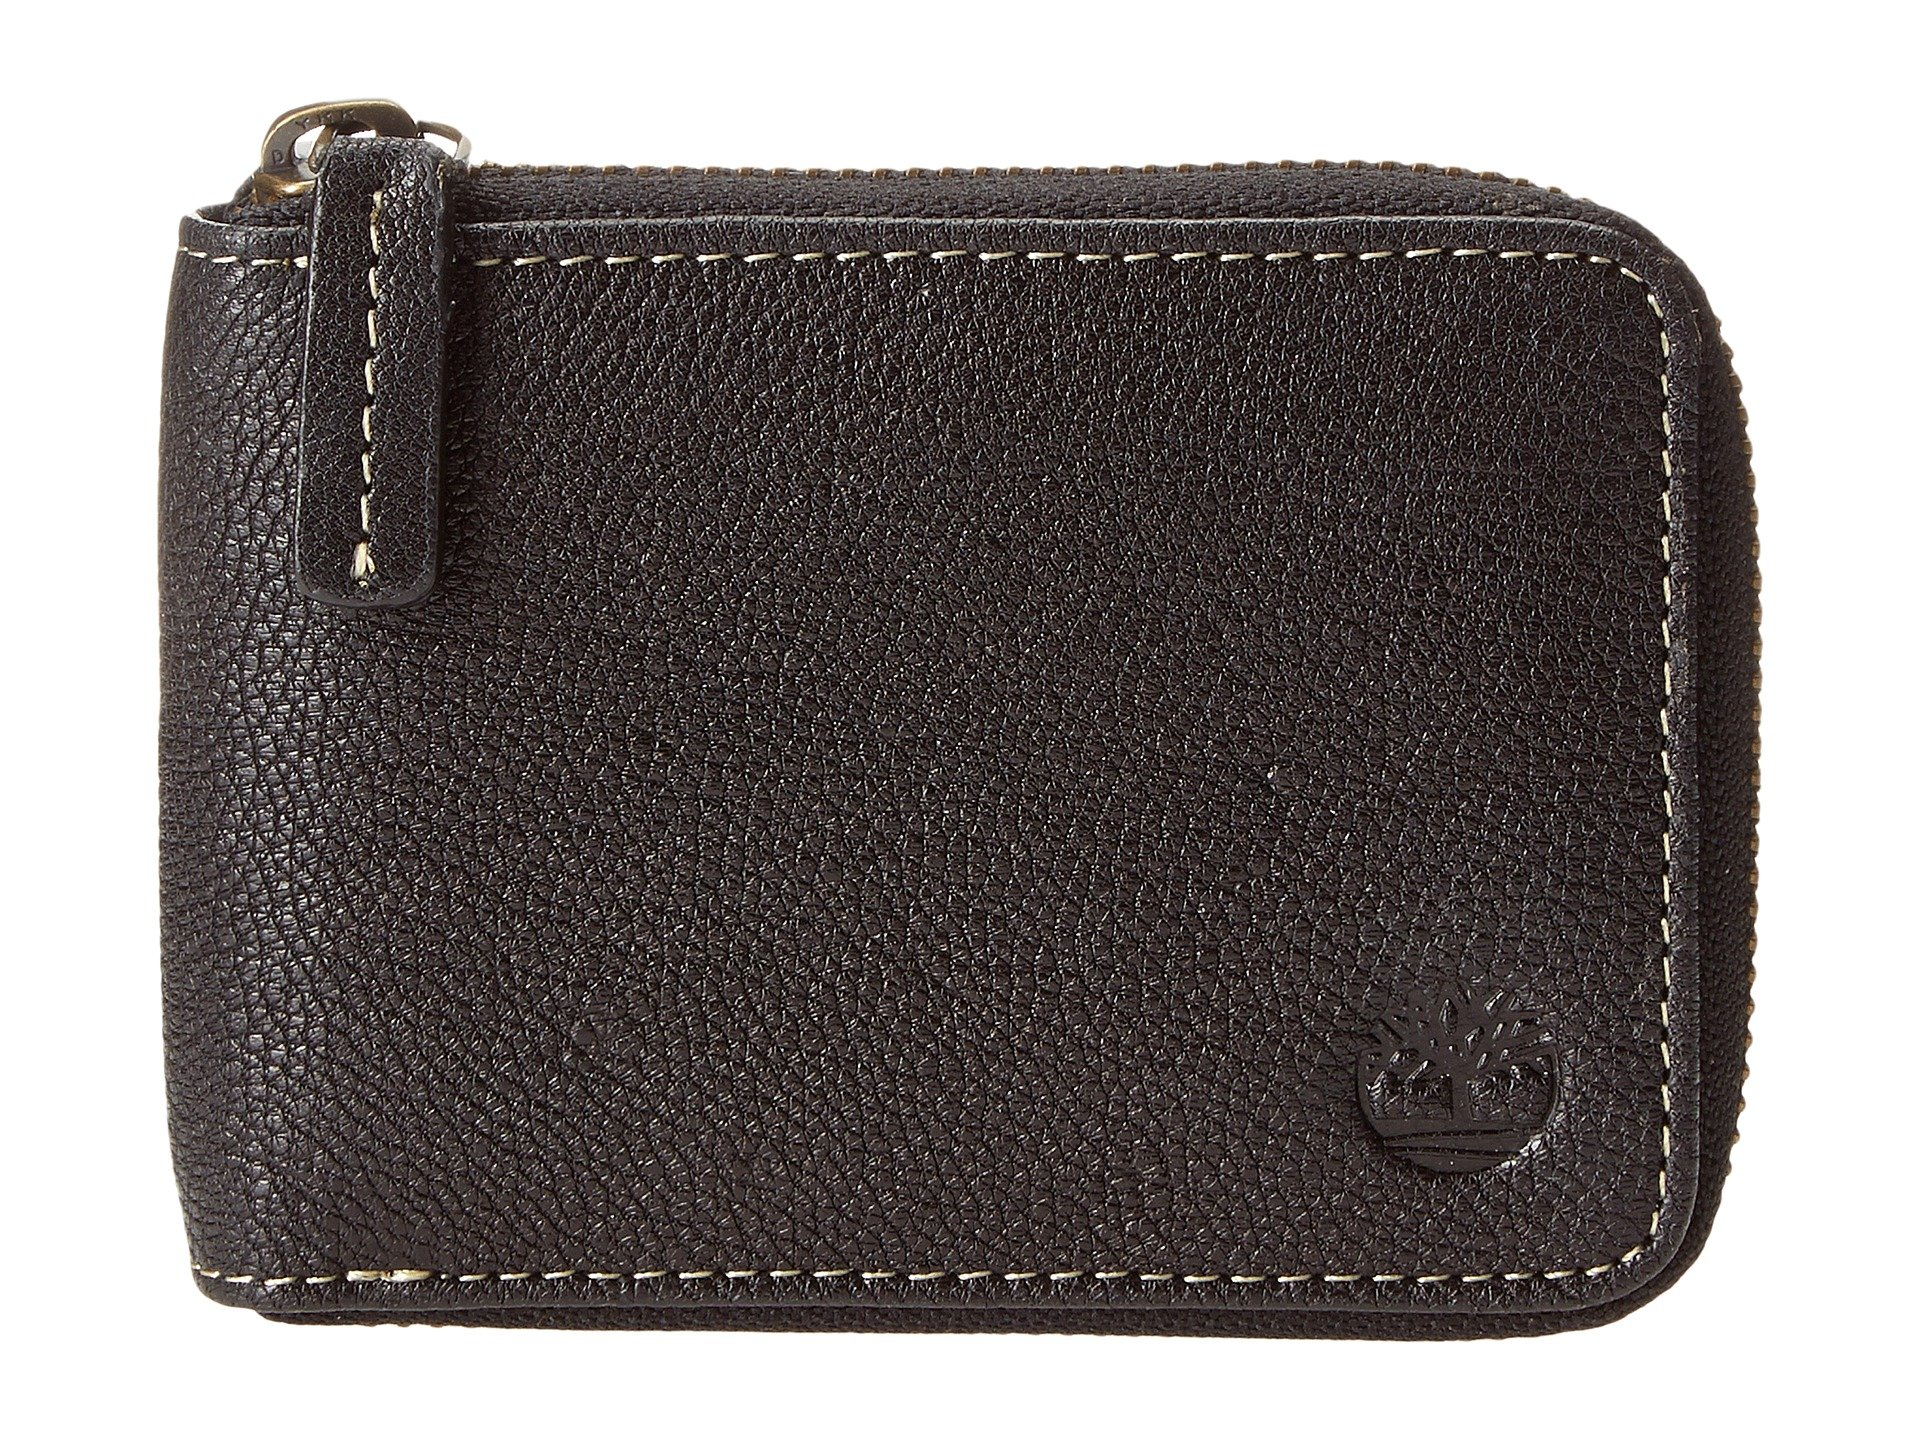 Monedero para Hombre Timberland Cavalieri Leather Zip Around Wallet  + Timberland en VeoyCompro.net